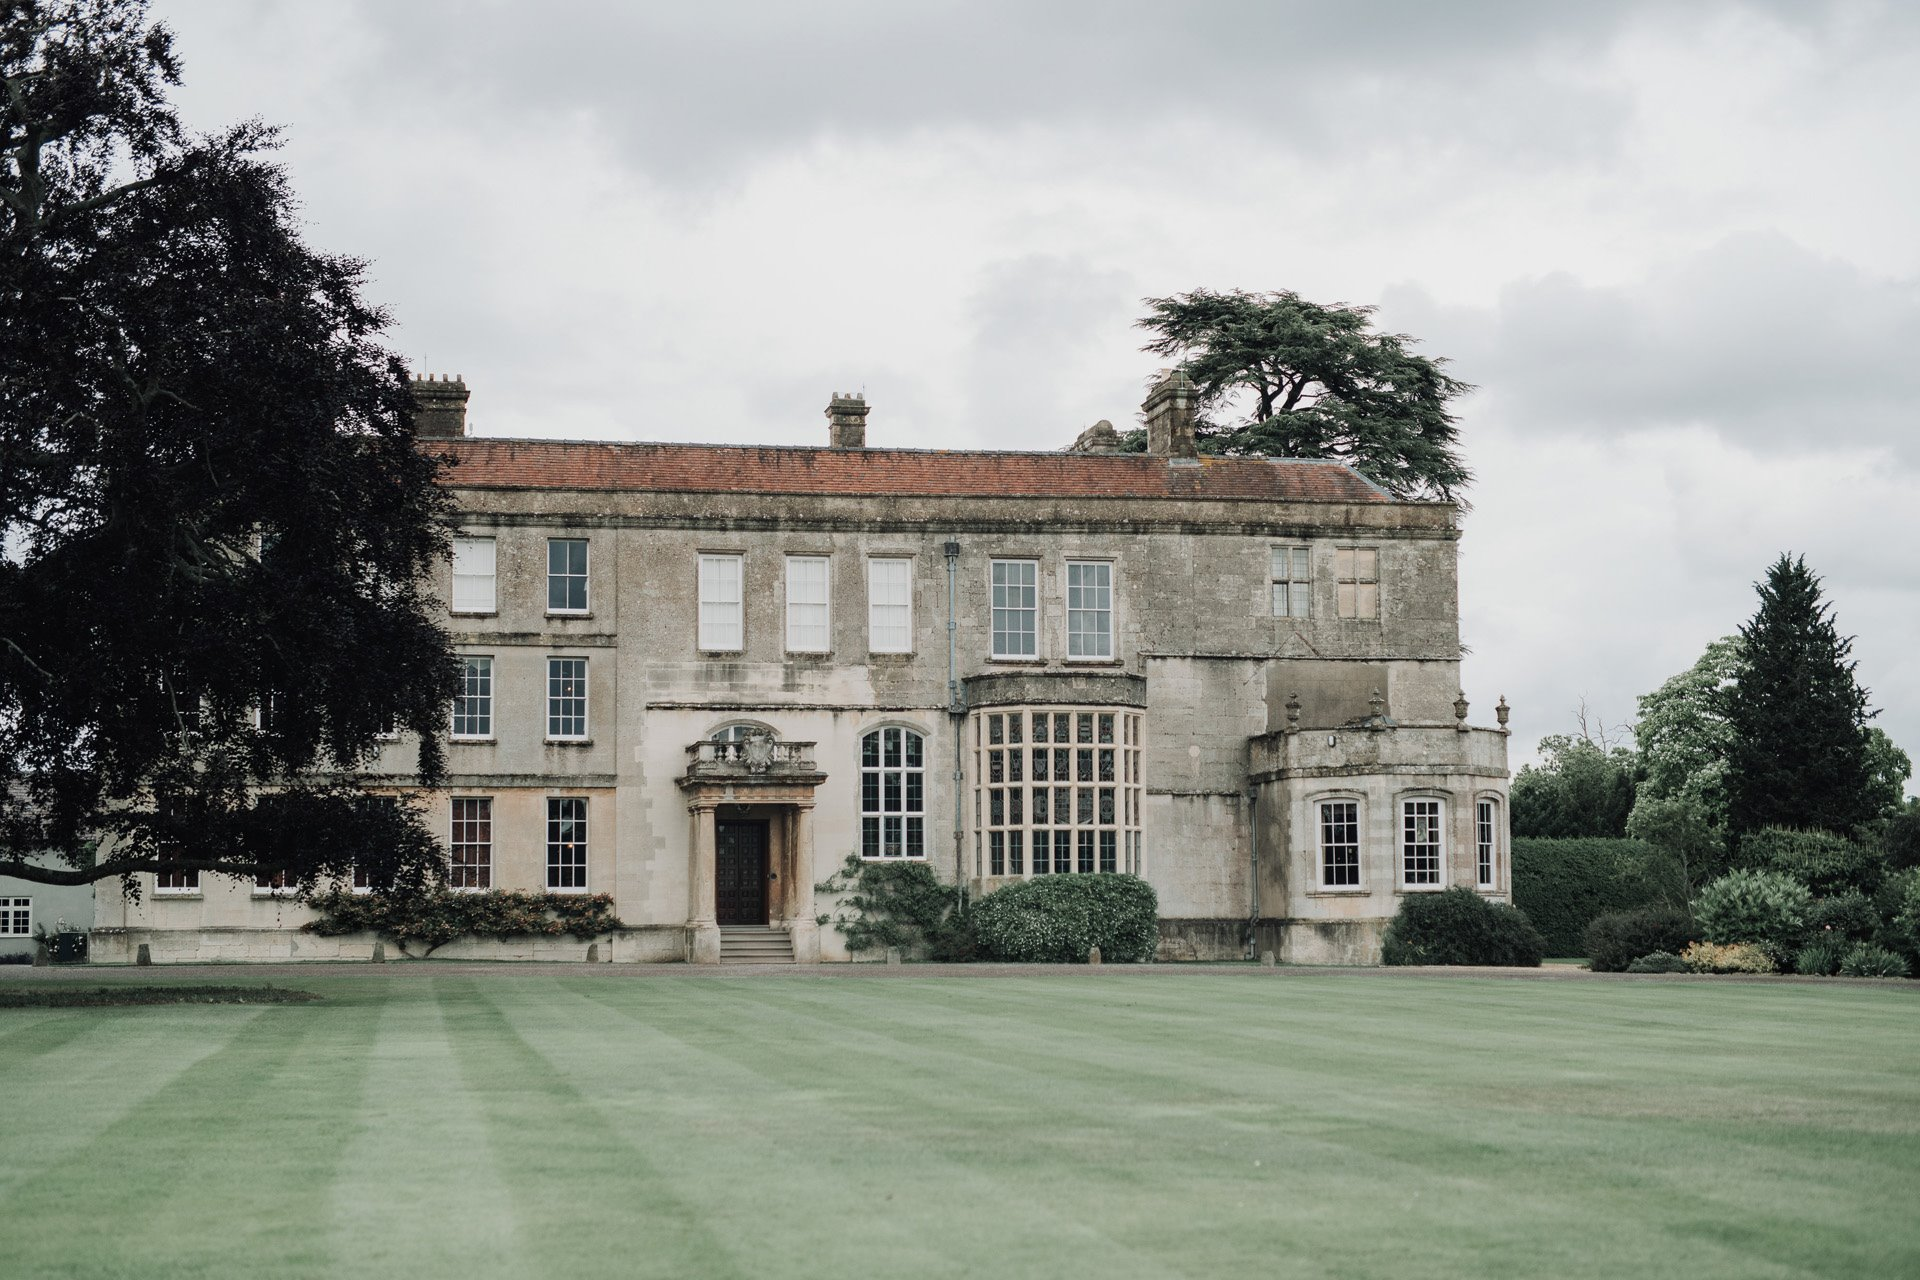 Stately home wedding venue elmore court with lawn and copper beech tree